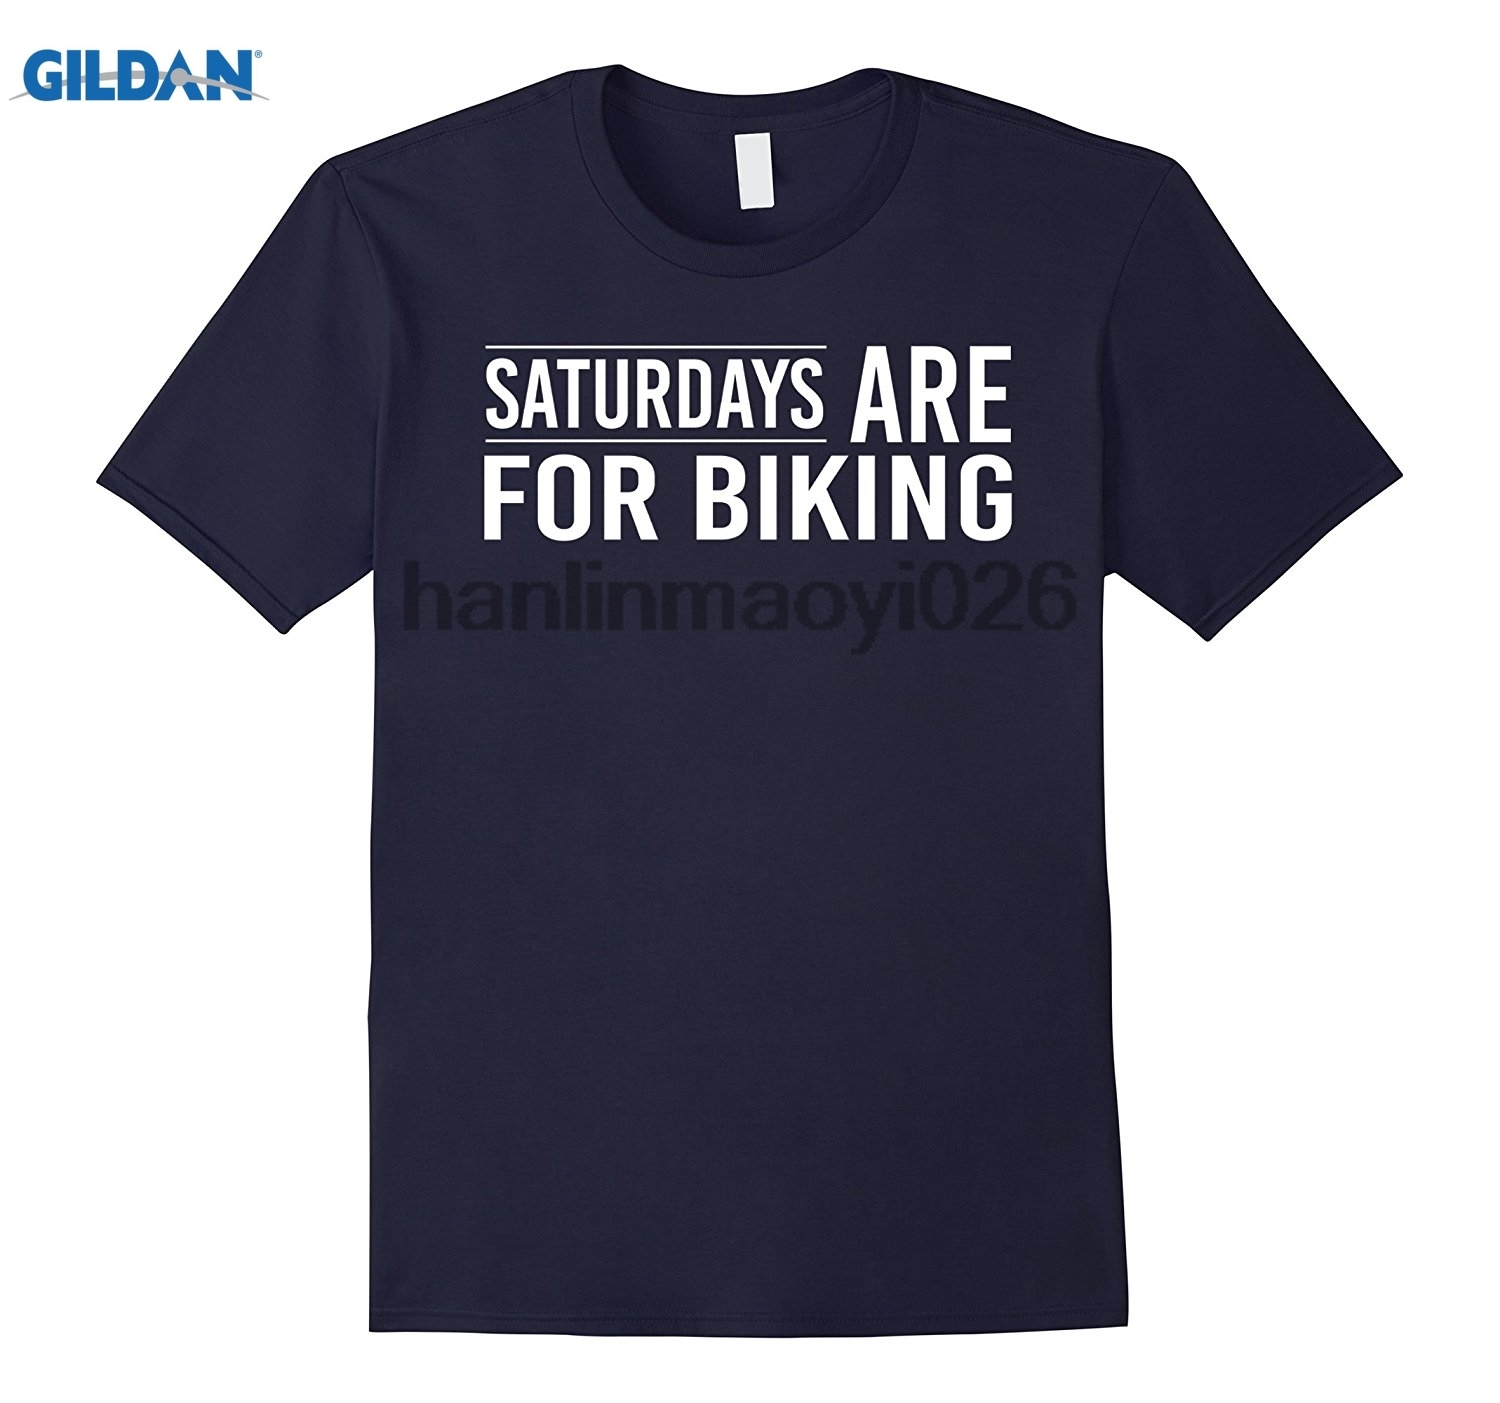 GILDAN Saturdays are for biking best bikers cyclists funny t-shirt